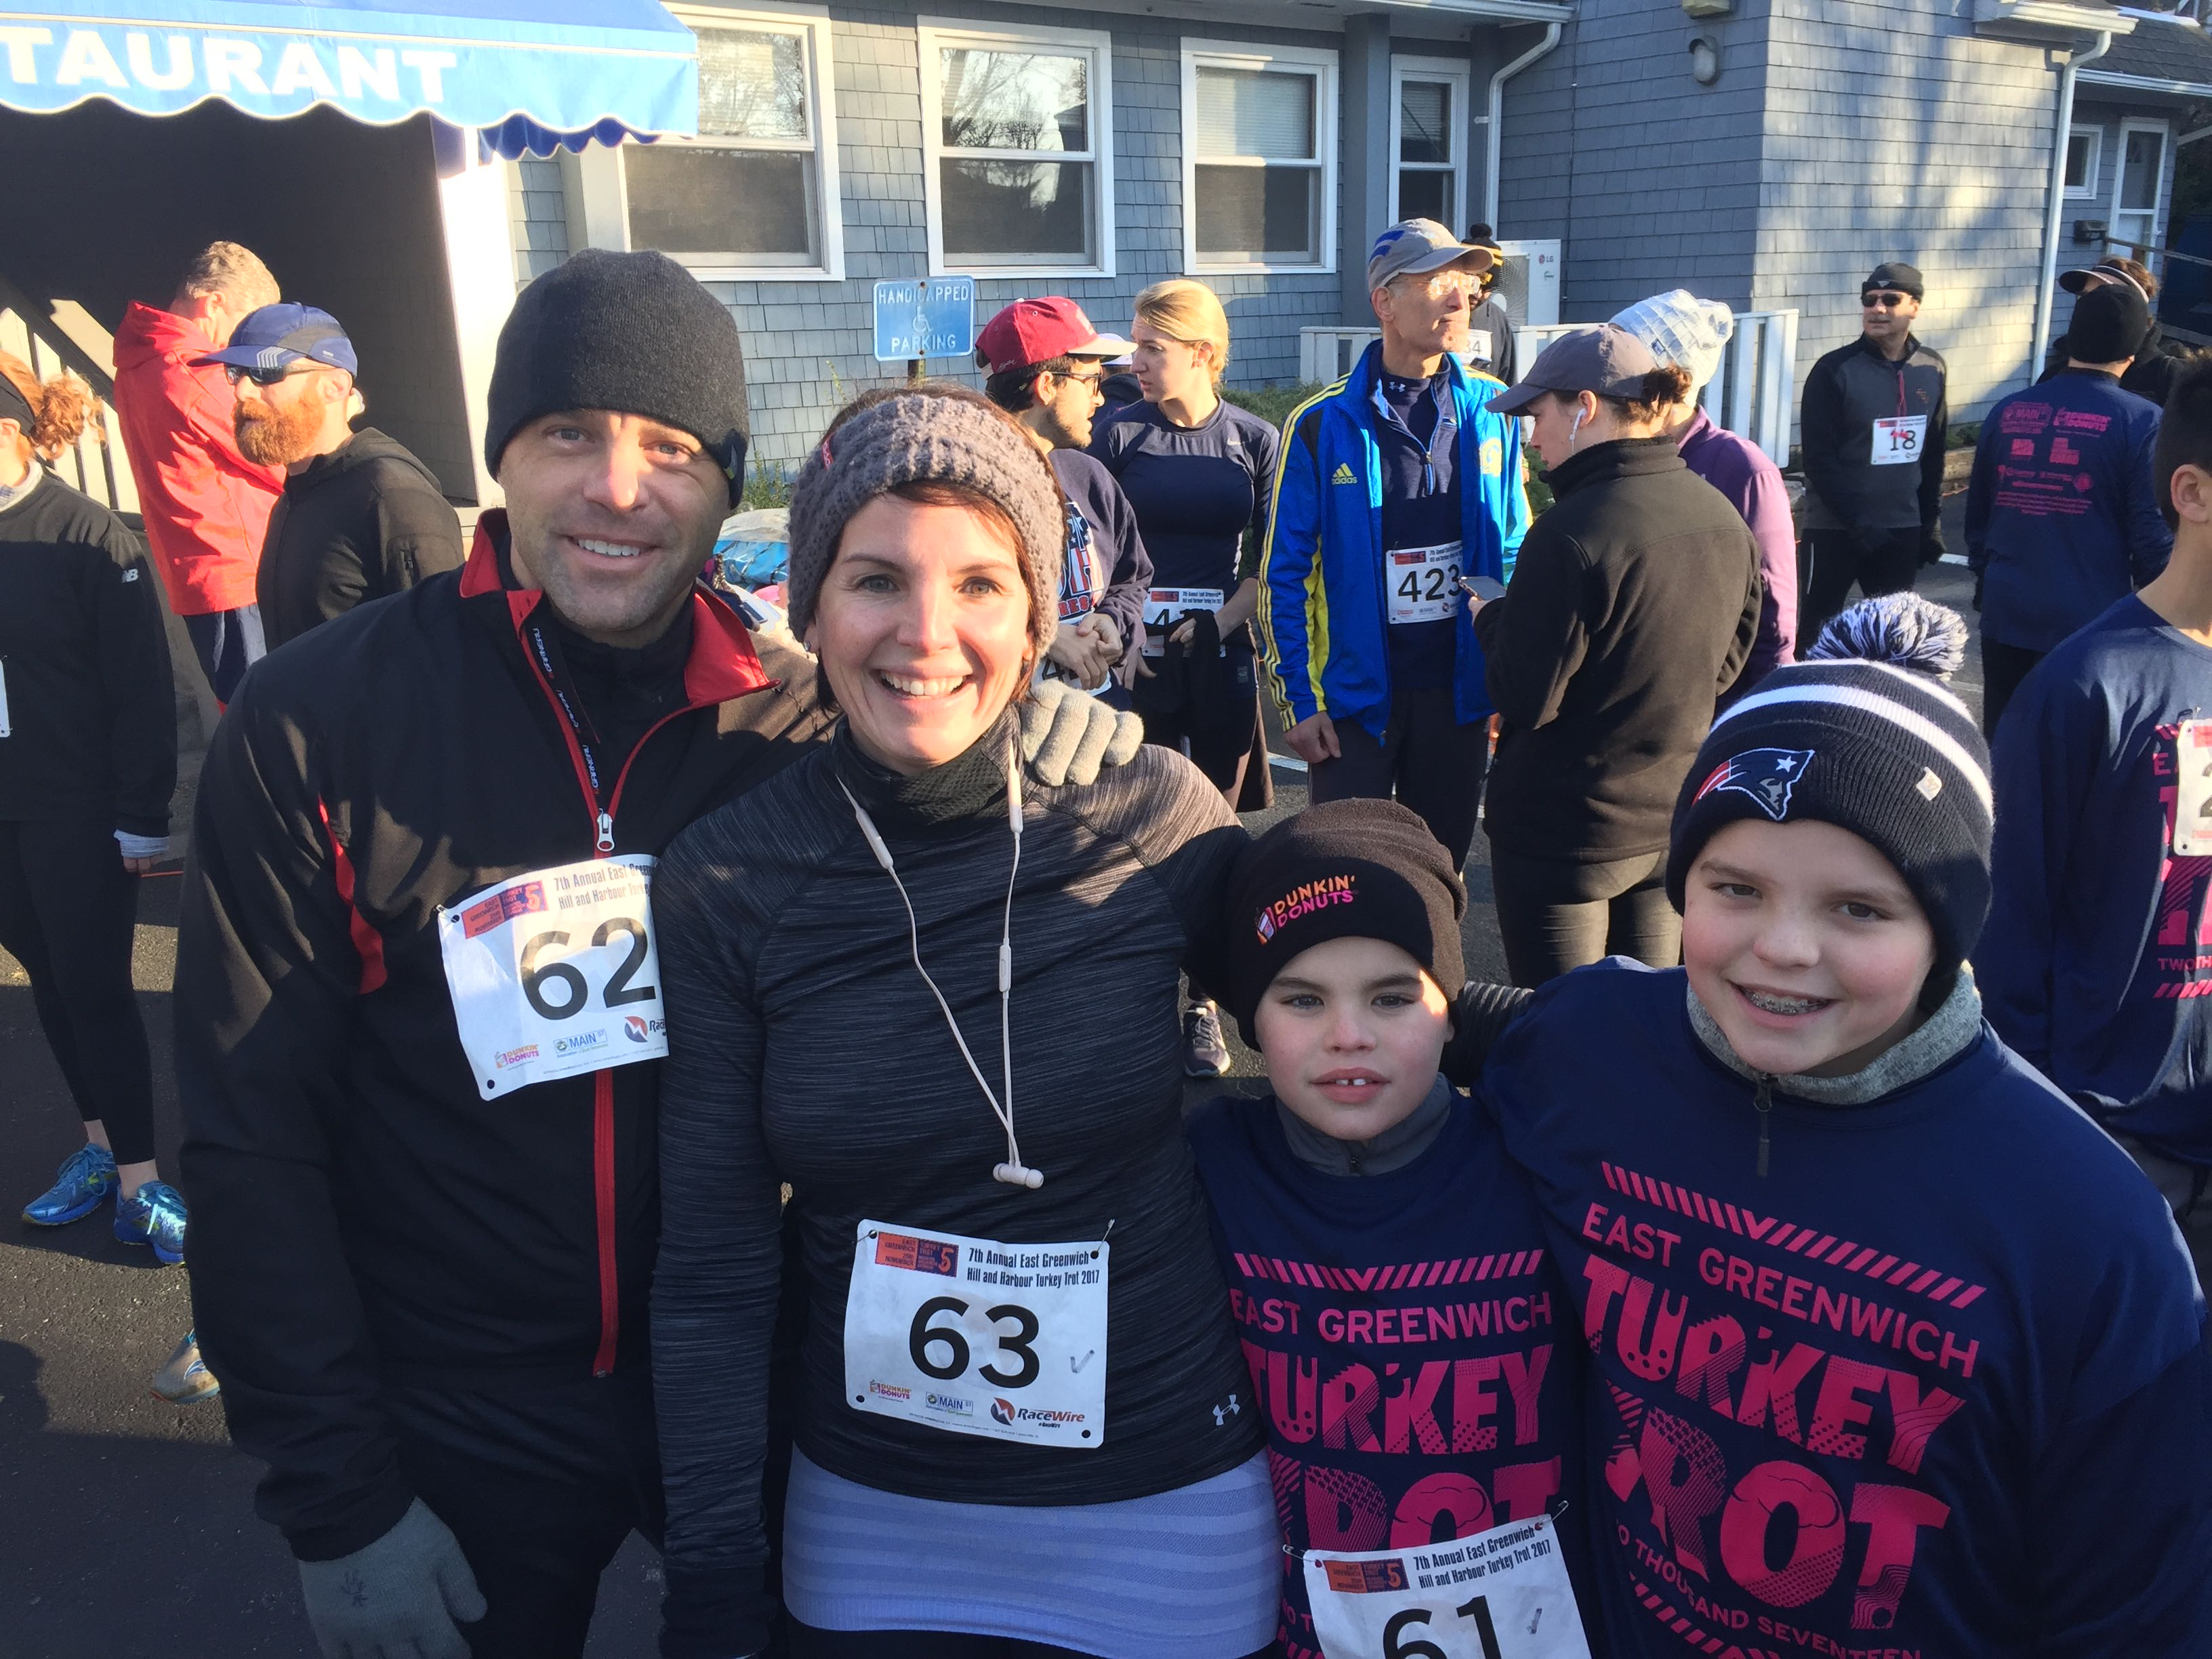 The Collier family of East Greenwich, pre-race, from left, Dave, Stacie, Declan and Sam.